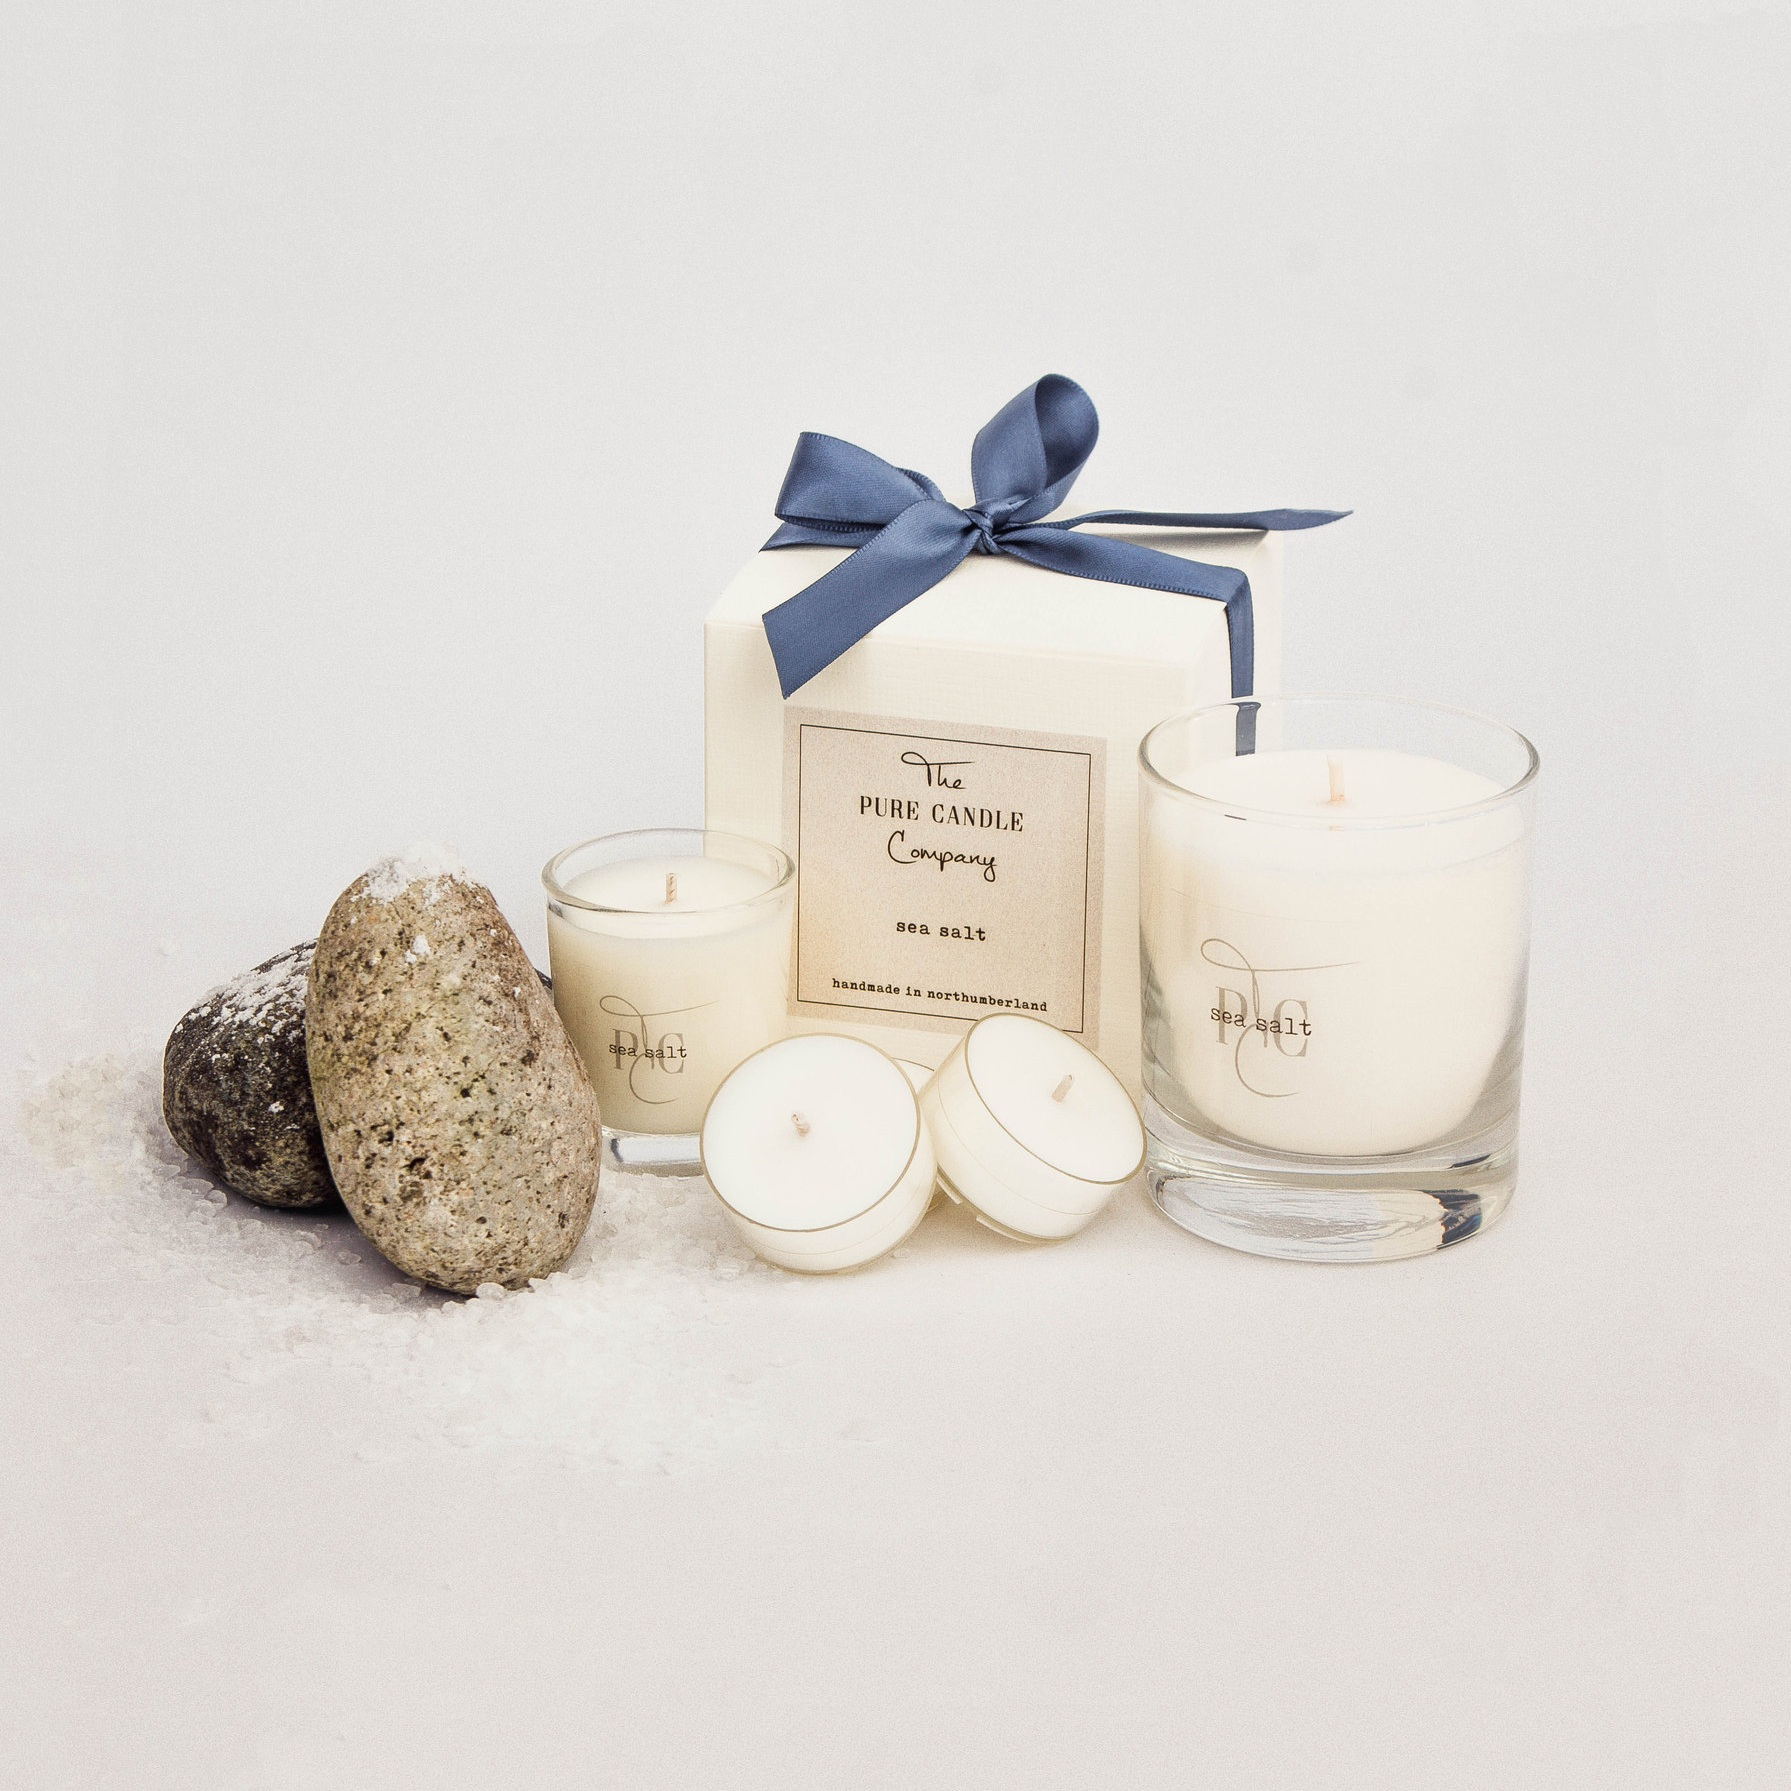 Handmade Soy Wax Candles - Inspired by nature.Handmade in our Northumberland studio.